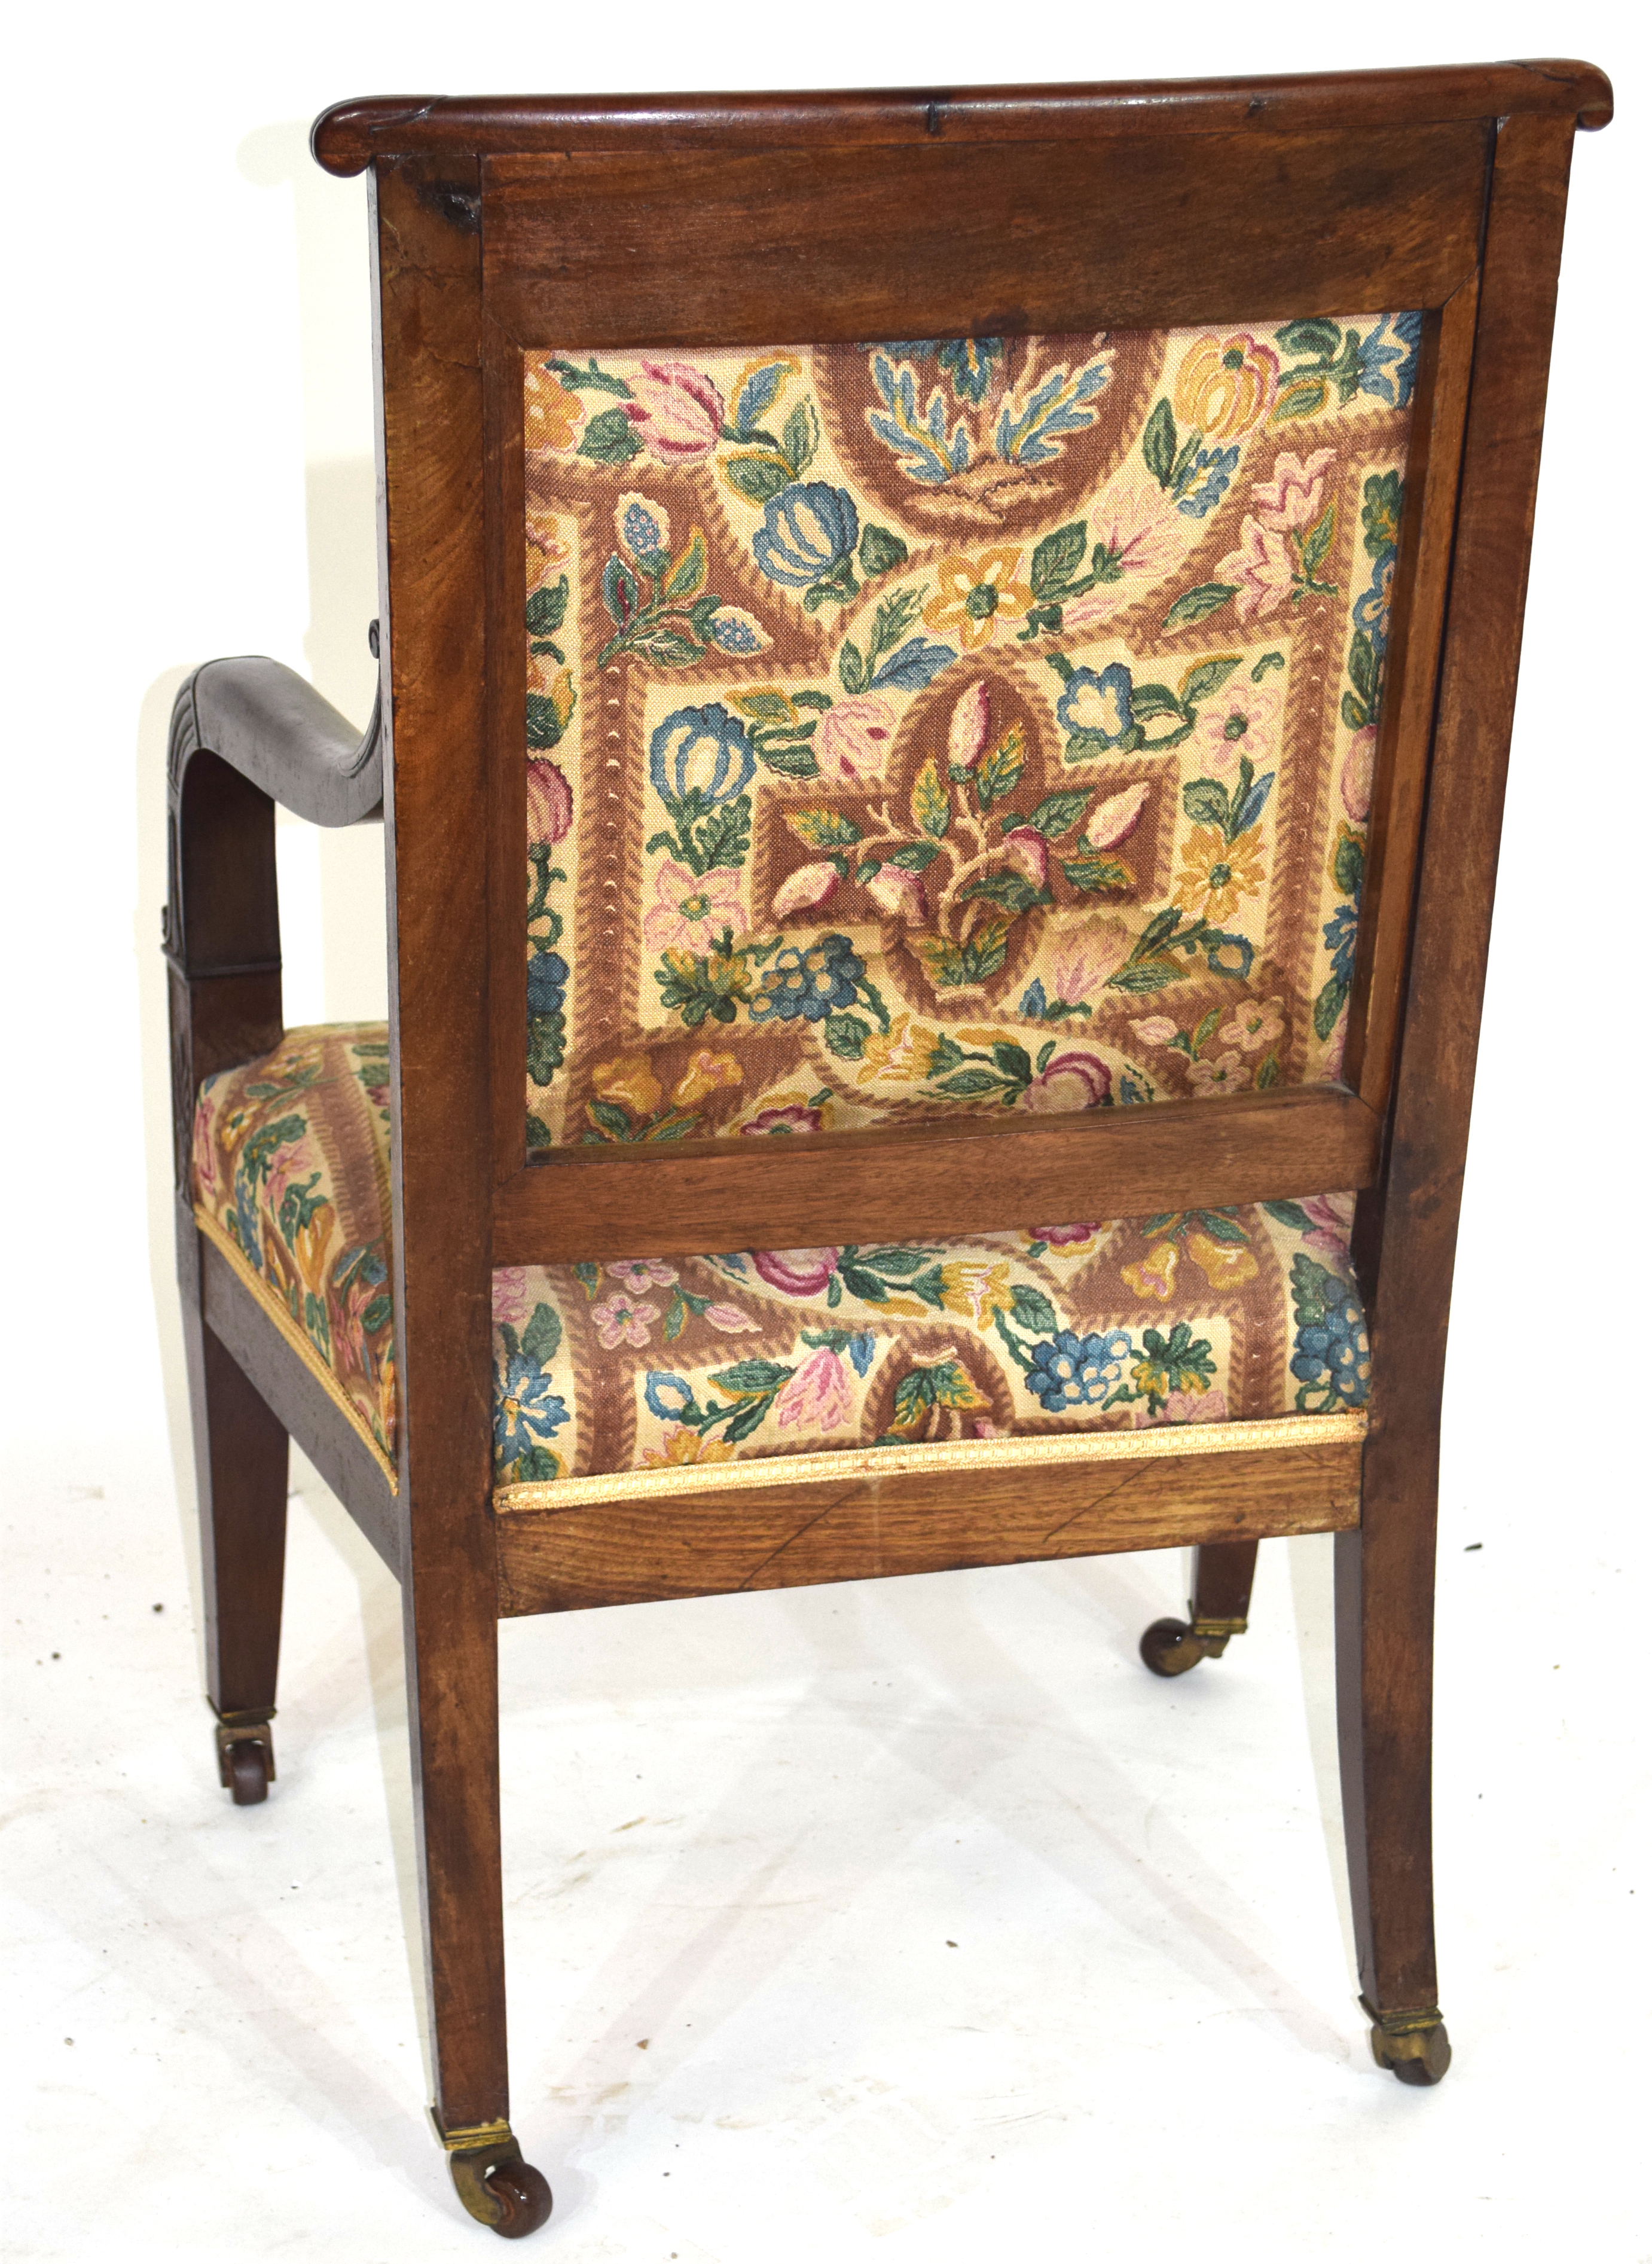 19th century mahogany framed armchair with tapering legs raised on casters, 92cm high Condition: - Image 3 of 4